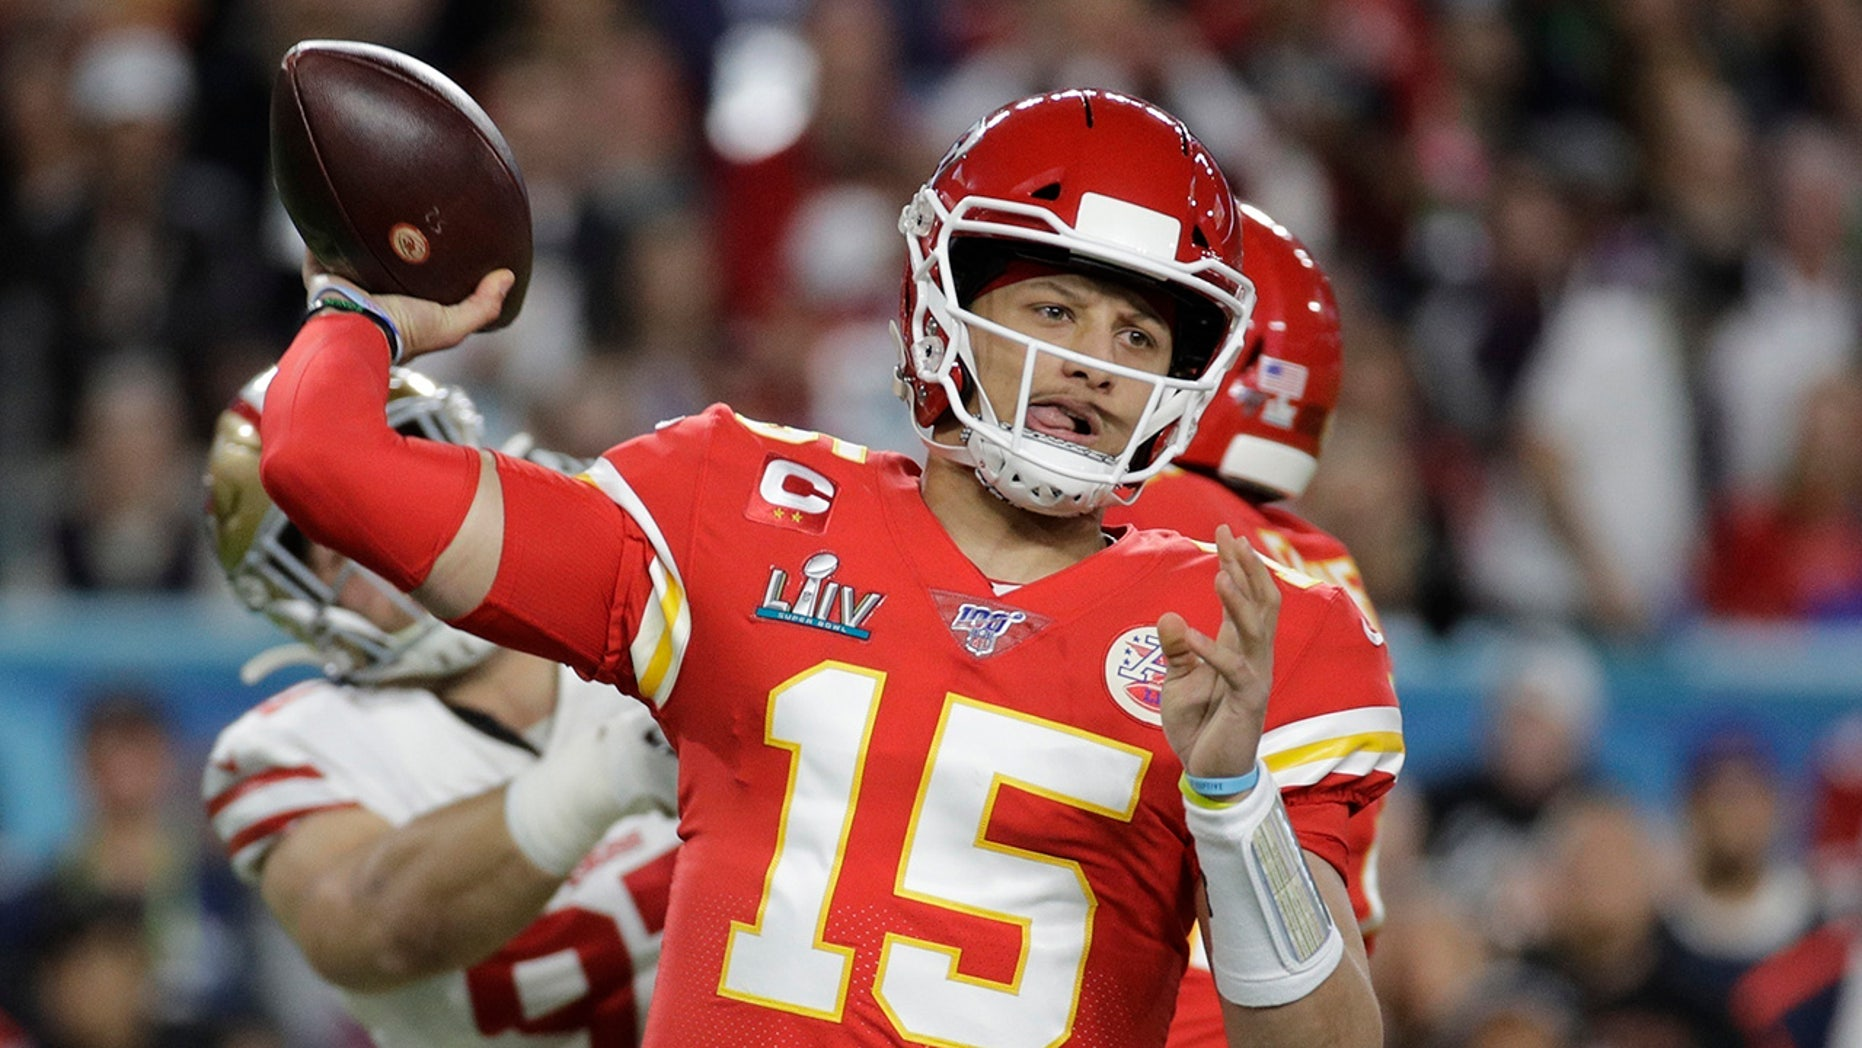 """Kansas City Chiefs quarterback Patrick Mahomes (15) passes against the San Francisco 49ers during the first half of the NFL Super Bowl 54 football game in Miami Gardens, Fla., on Feb. 2, 2020. Mahomes agreed to a 1[ads1]0-year extension worth $503 million, according to his agency, Steinberg Sports. <br /> (AP Photo / Patrick Semansky, file) """"/></source></source></picture></div> <div class="""